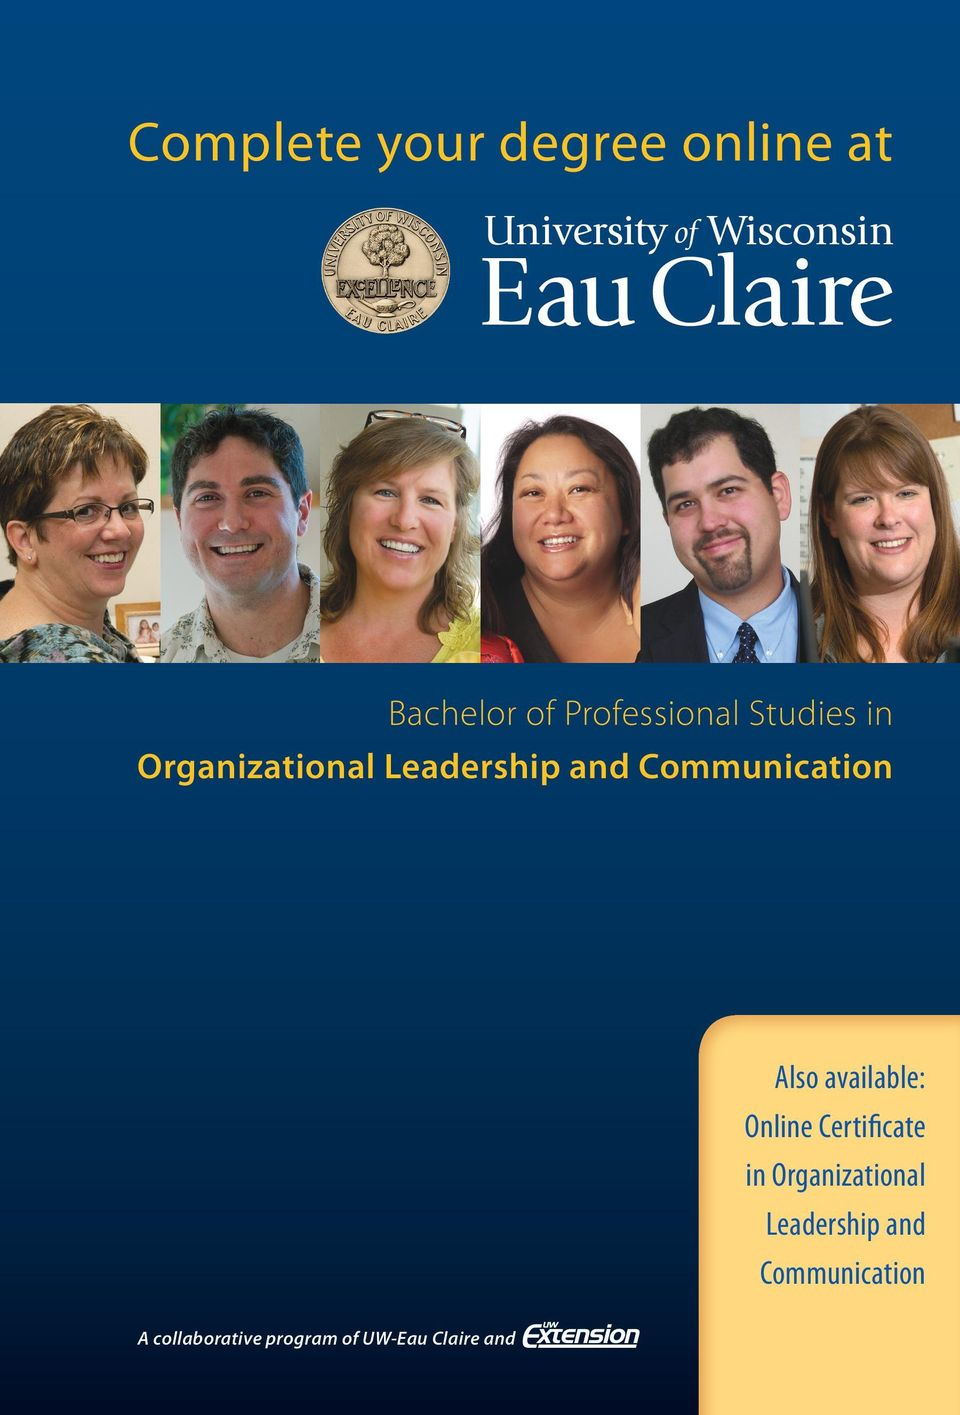 available: Online Certificate in Organizational Leadership